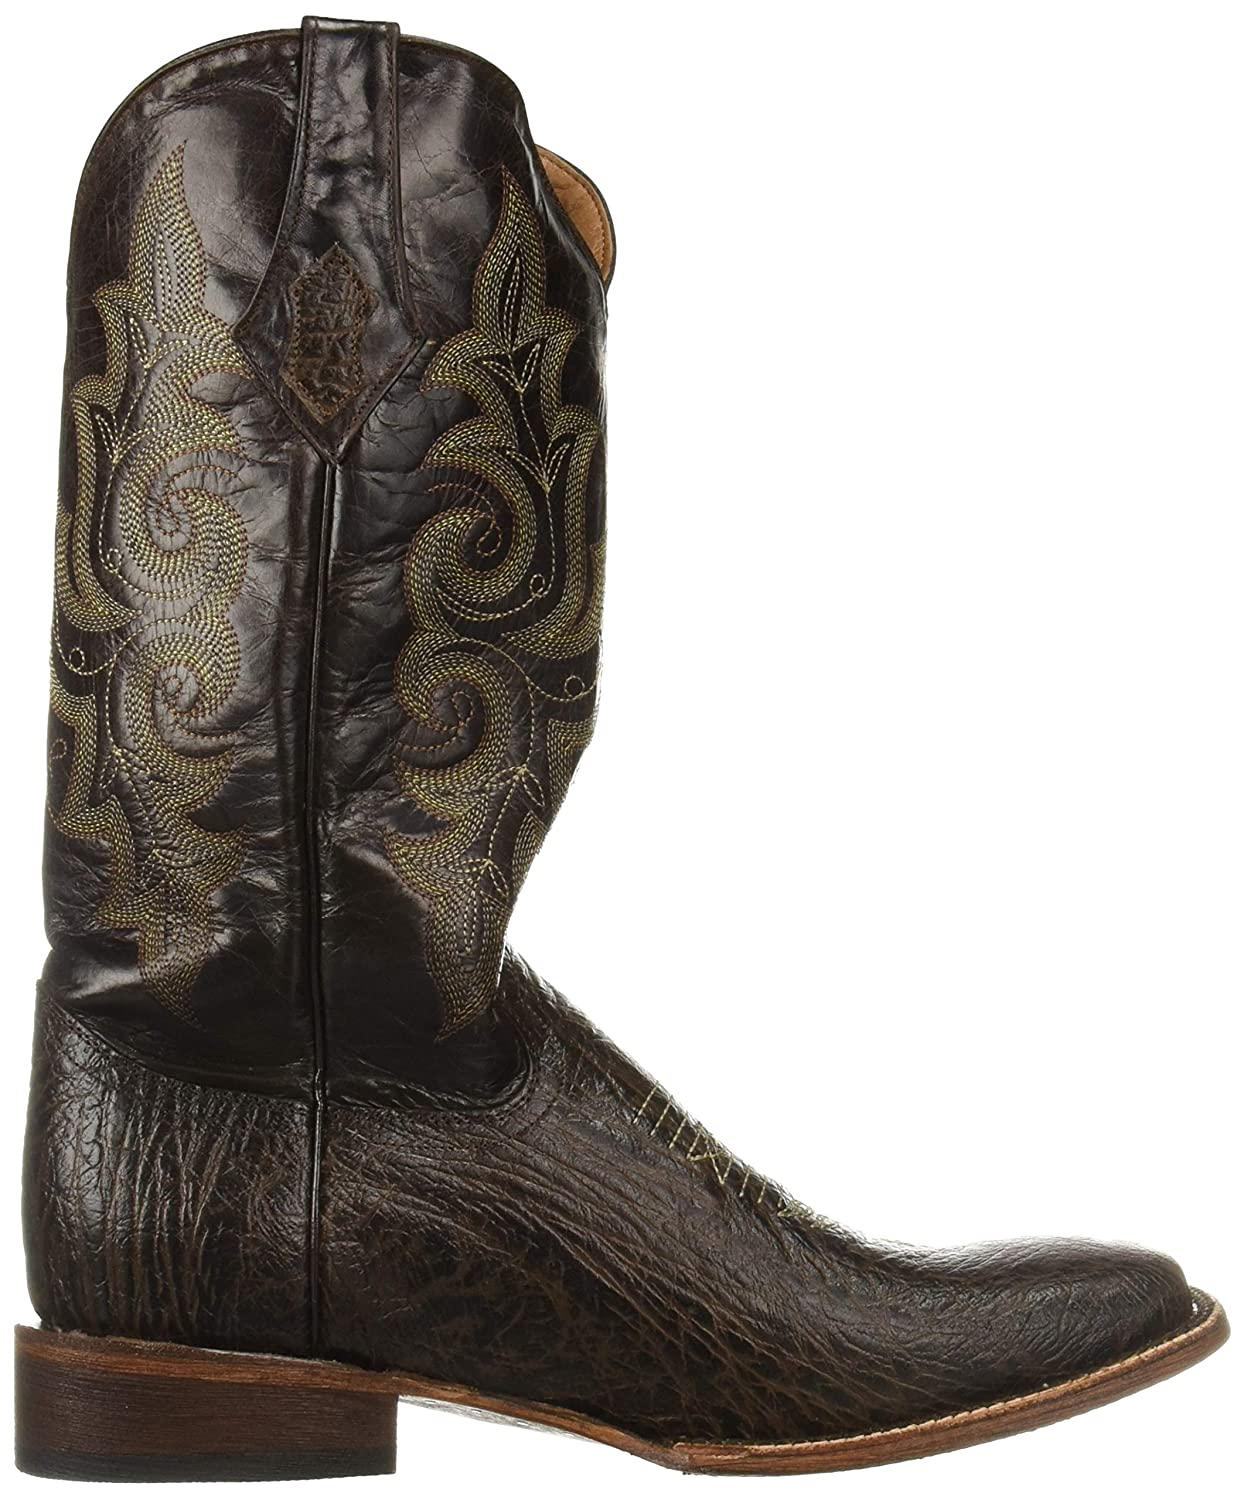 Ferrini Mens Acero Square Toe Boots